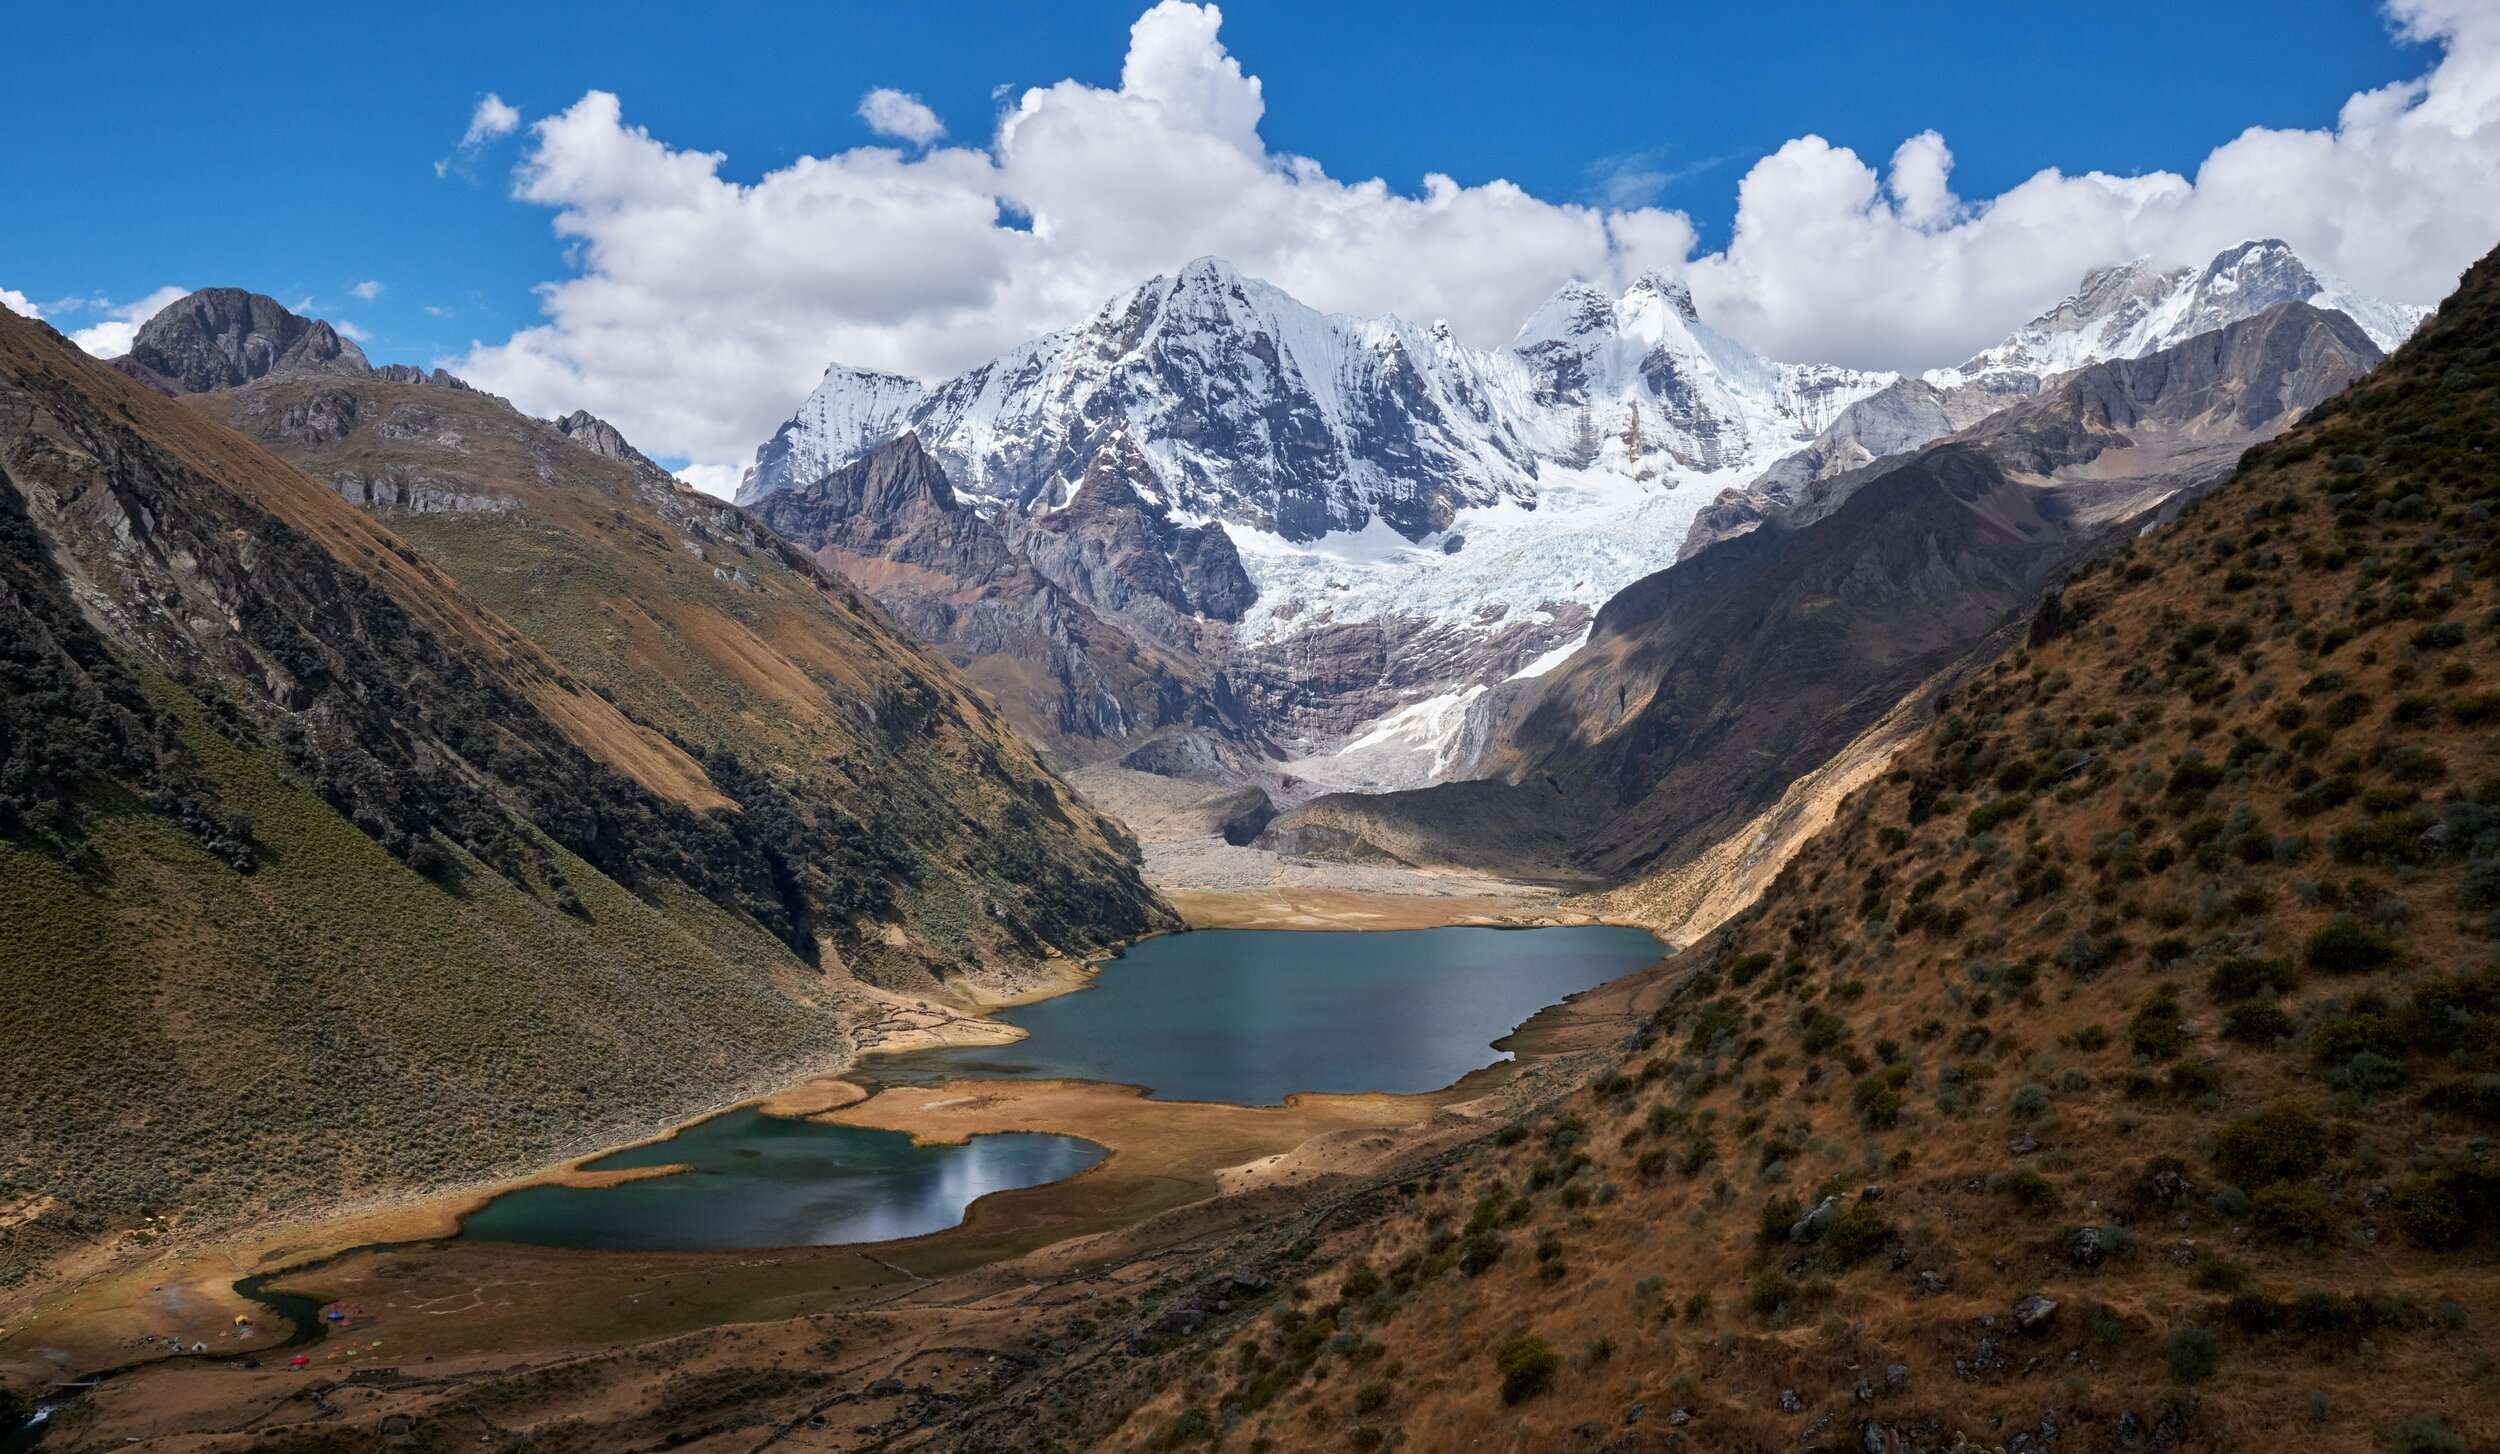 Snow capped mountains and lakes in Cordillera Huayhuash in Peru